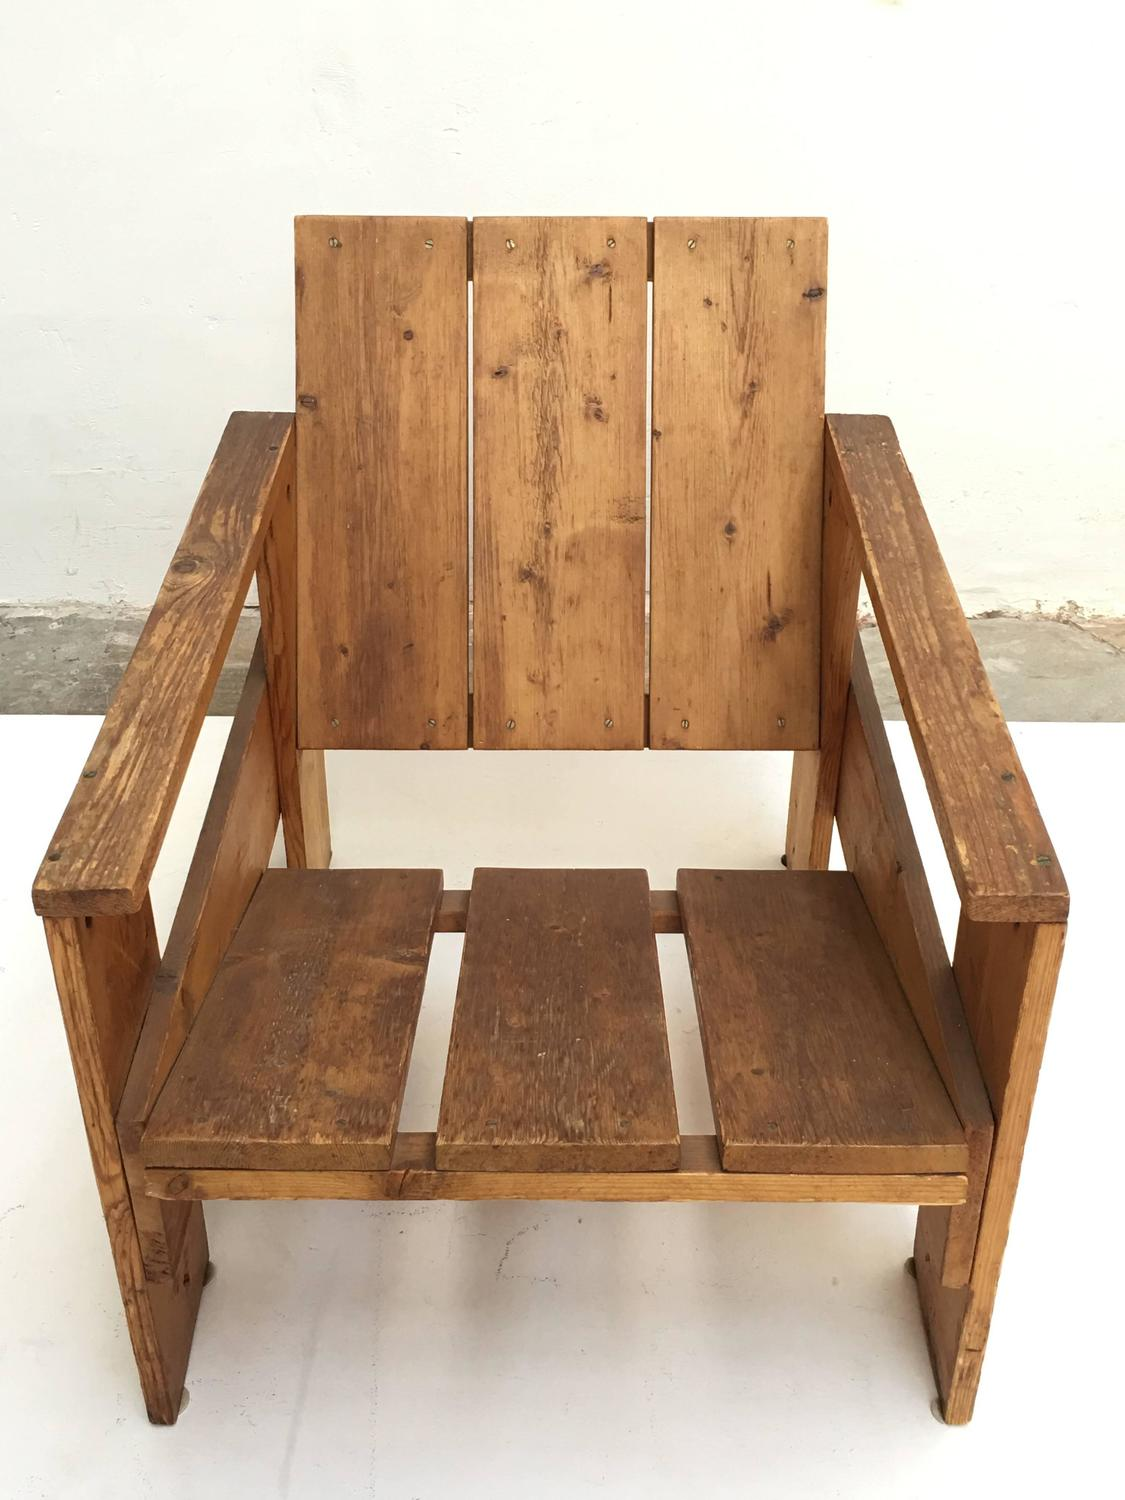 gerrit rietveld crate chair black metal folding chairs 1950s by unknown manufacturer